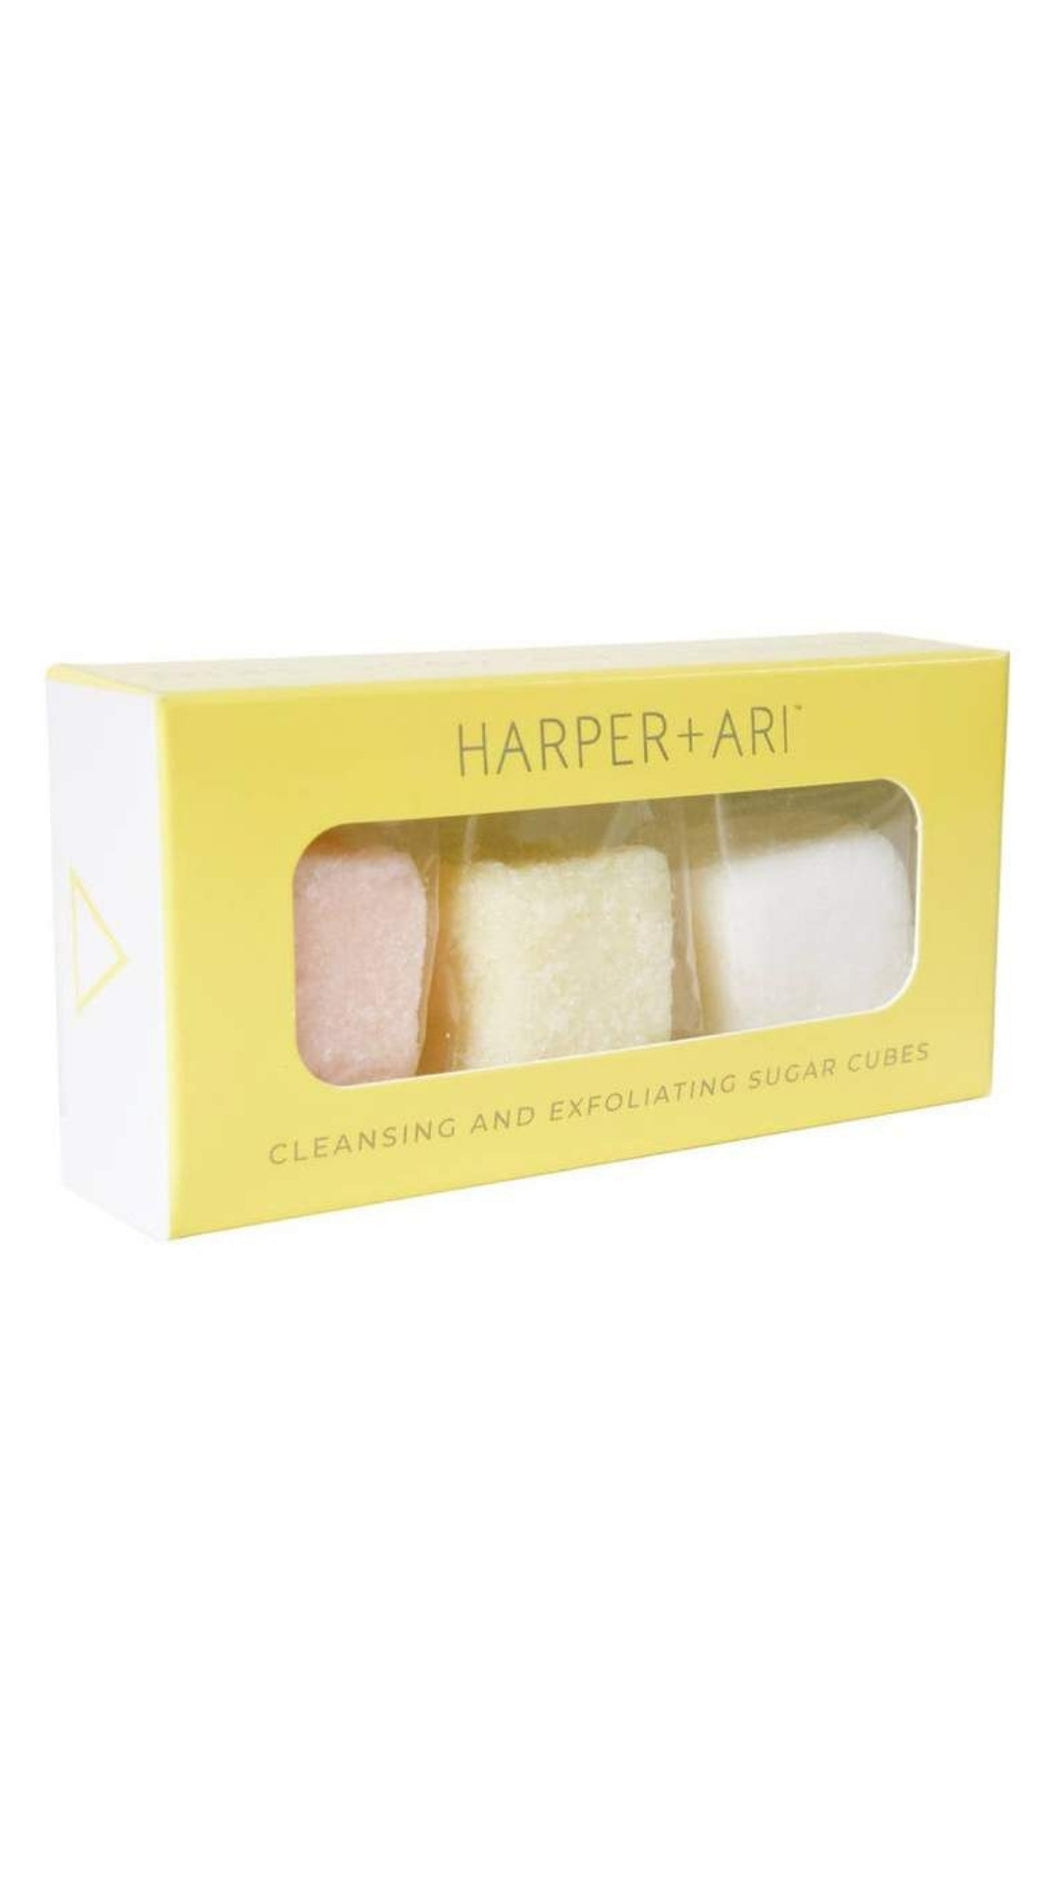 Cleansing & Exfoliating Sugar Cubes